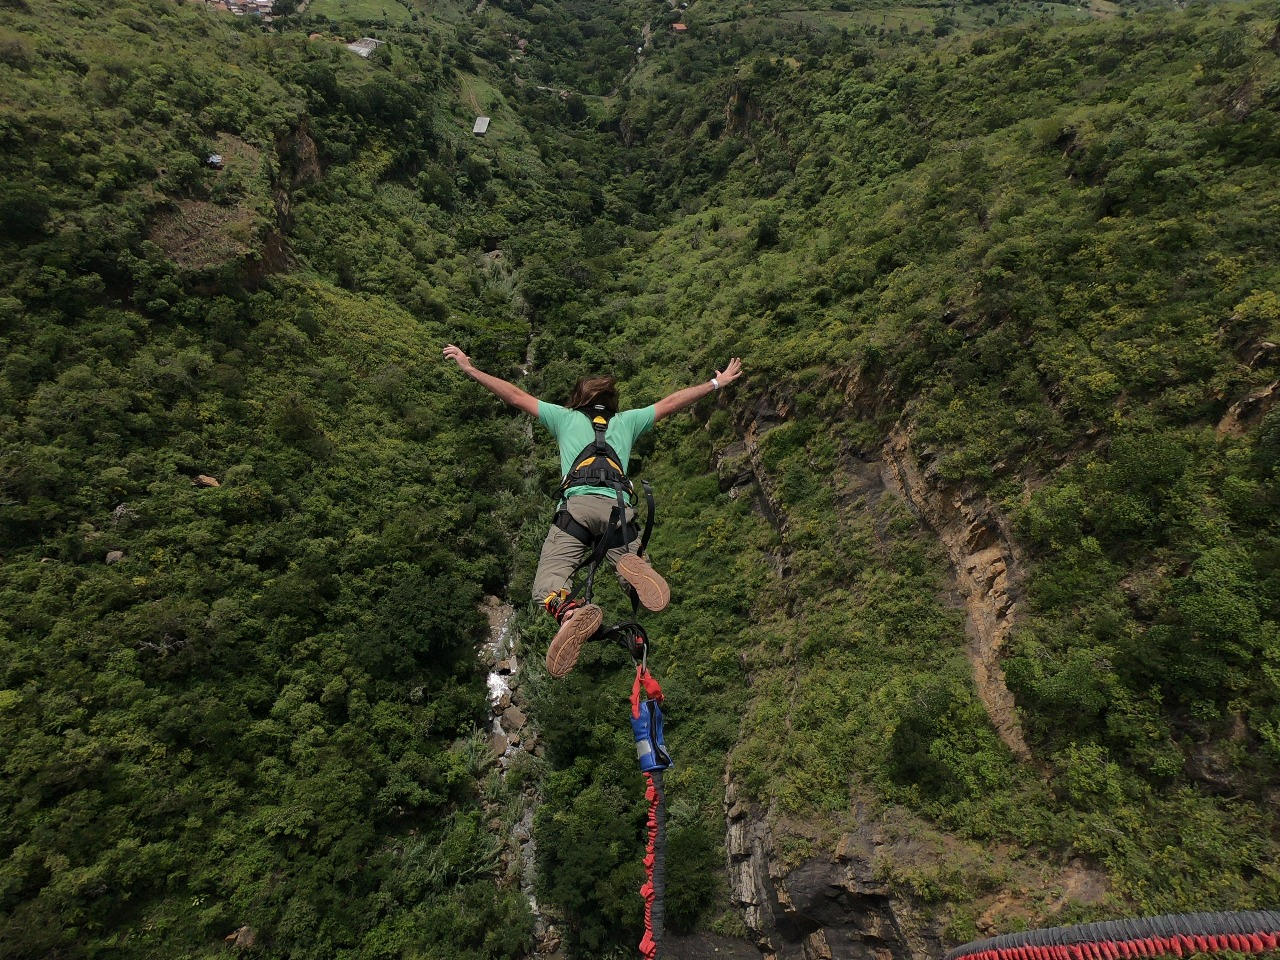 Jimmy bungee jumping in San Gil, Colombia!